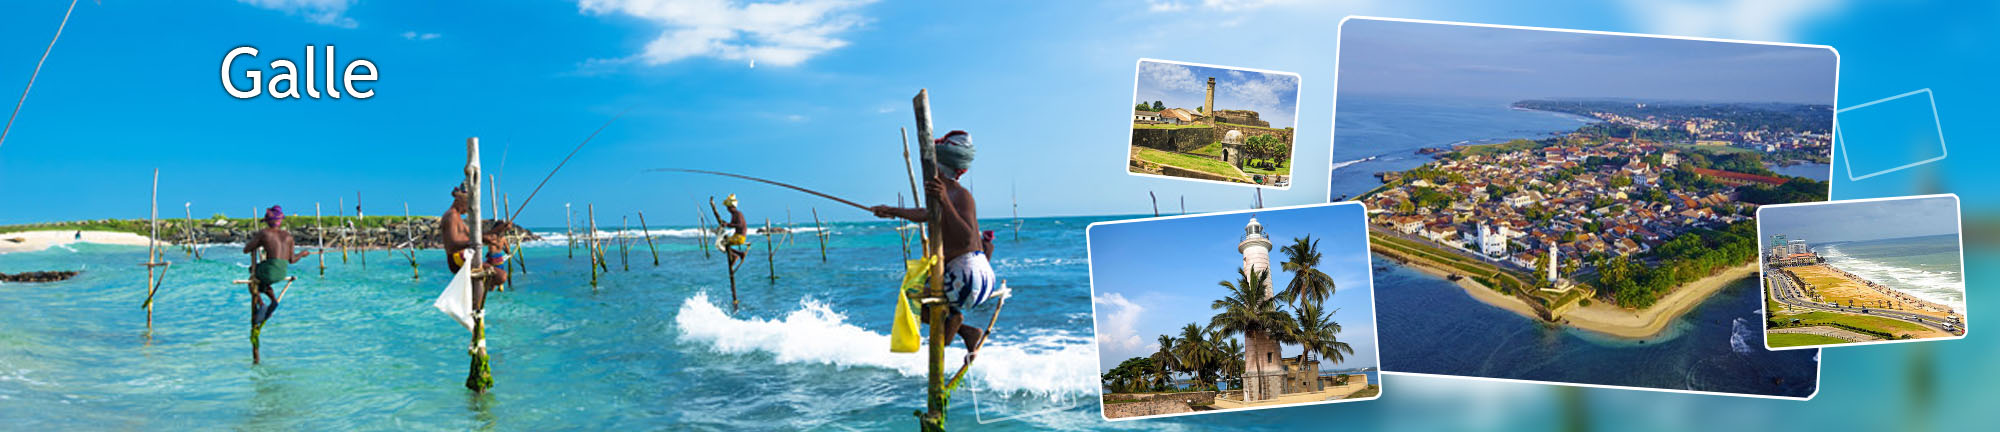 inora-travel-lanka-galle-banner